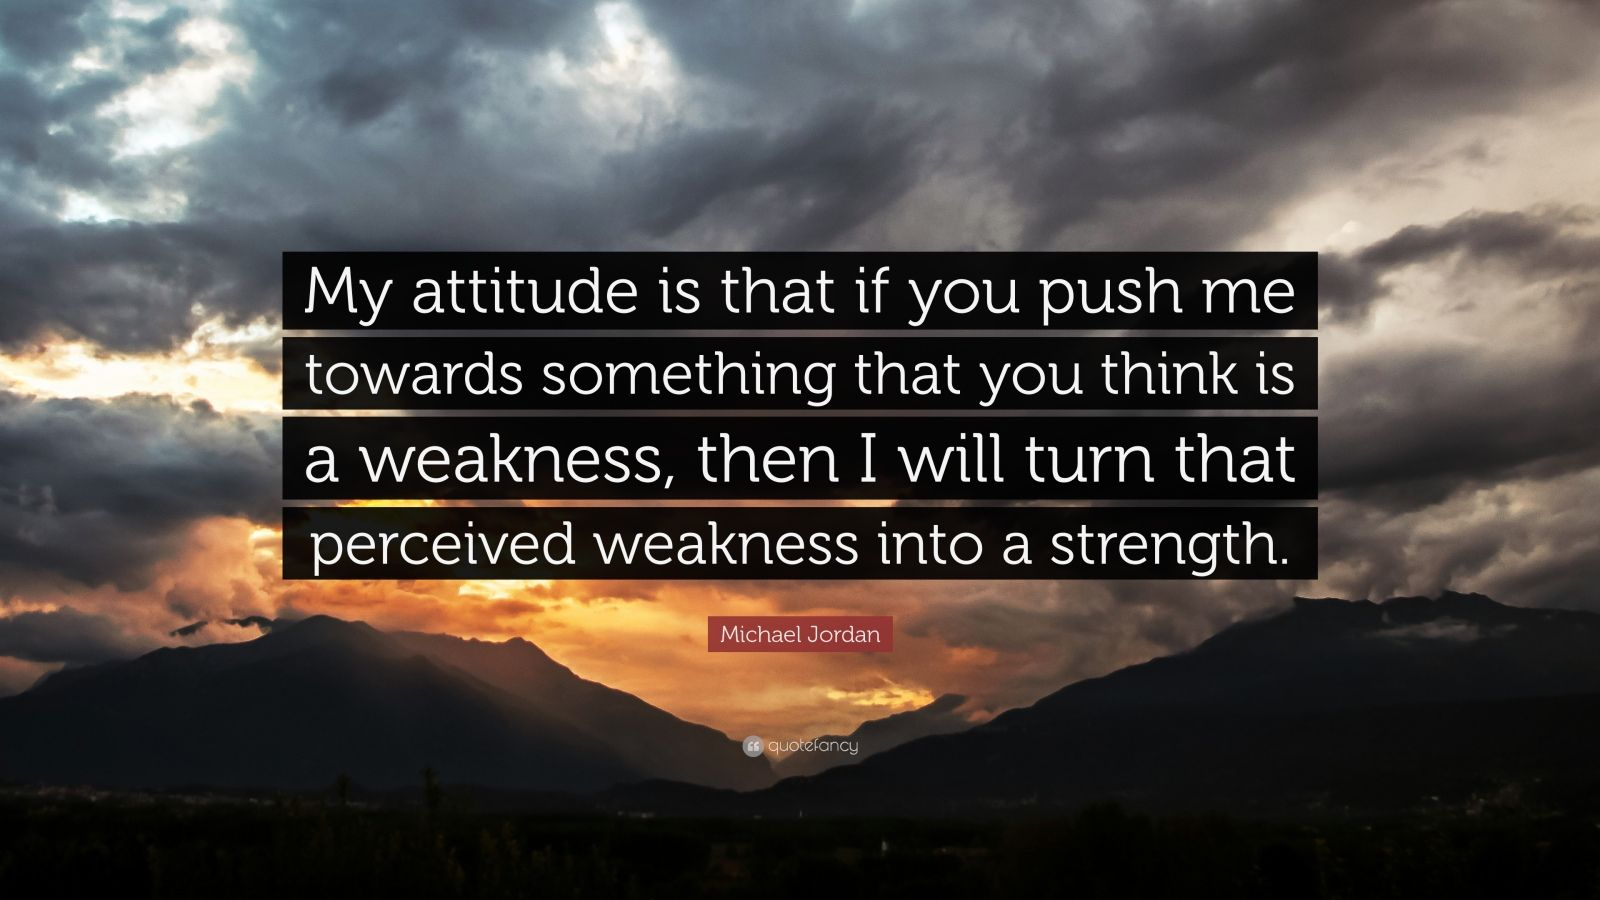 """Michael Jordan Quote: """"My attitude is that if you push me towards something that you think is a weakness, then I will turn that perceived weakness into a strength."""""""